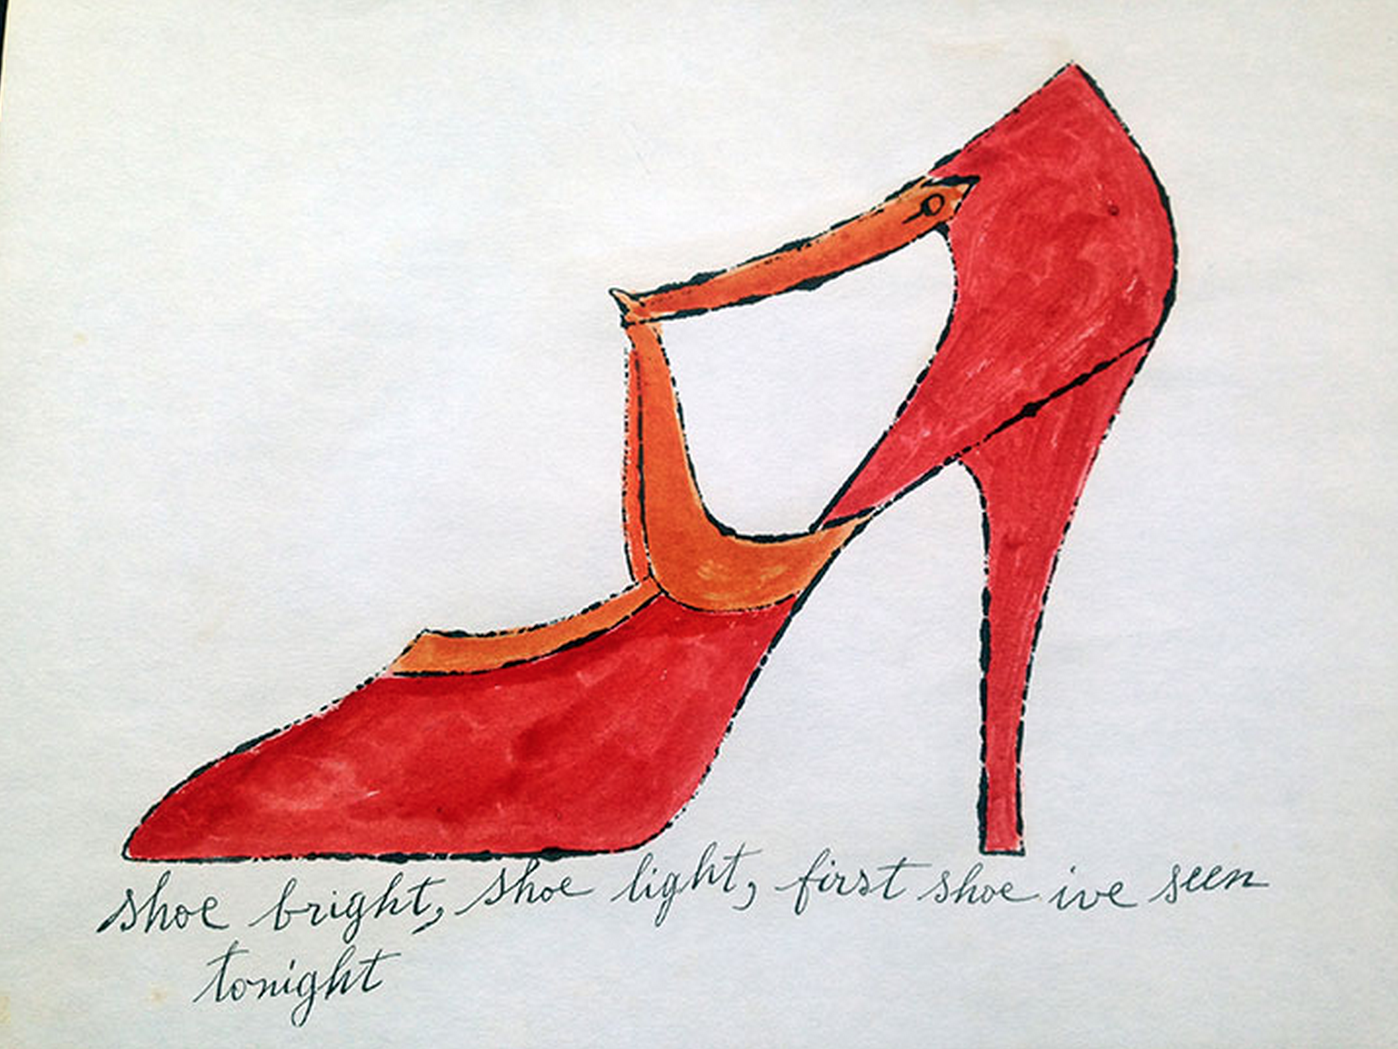 Shoe bright by Andy Warhol